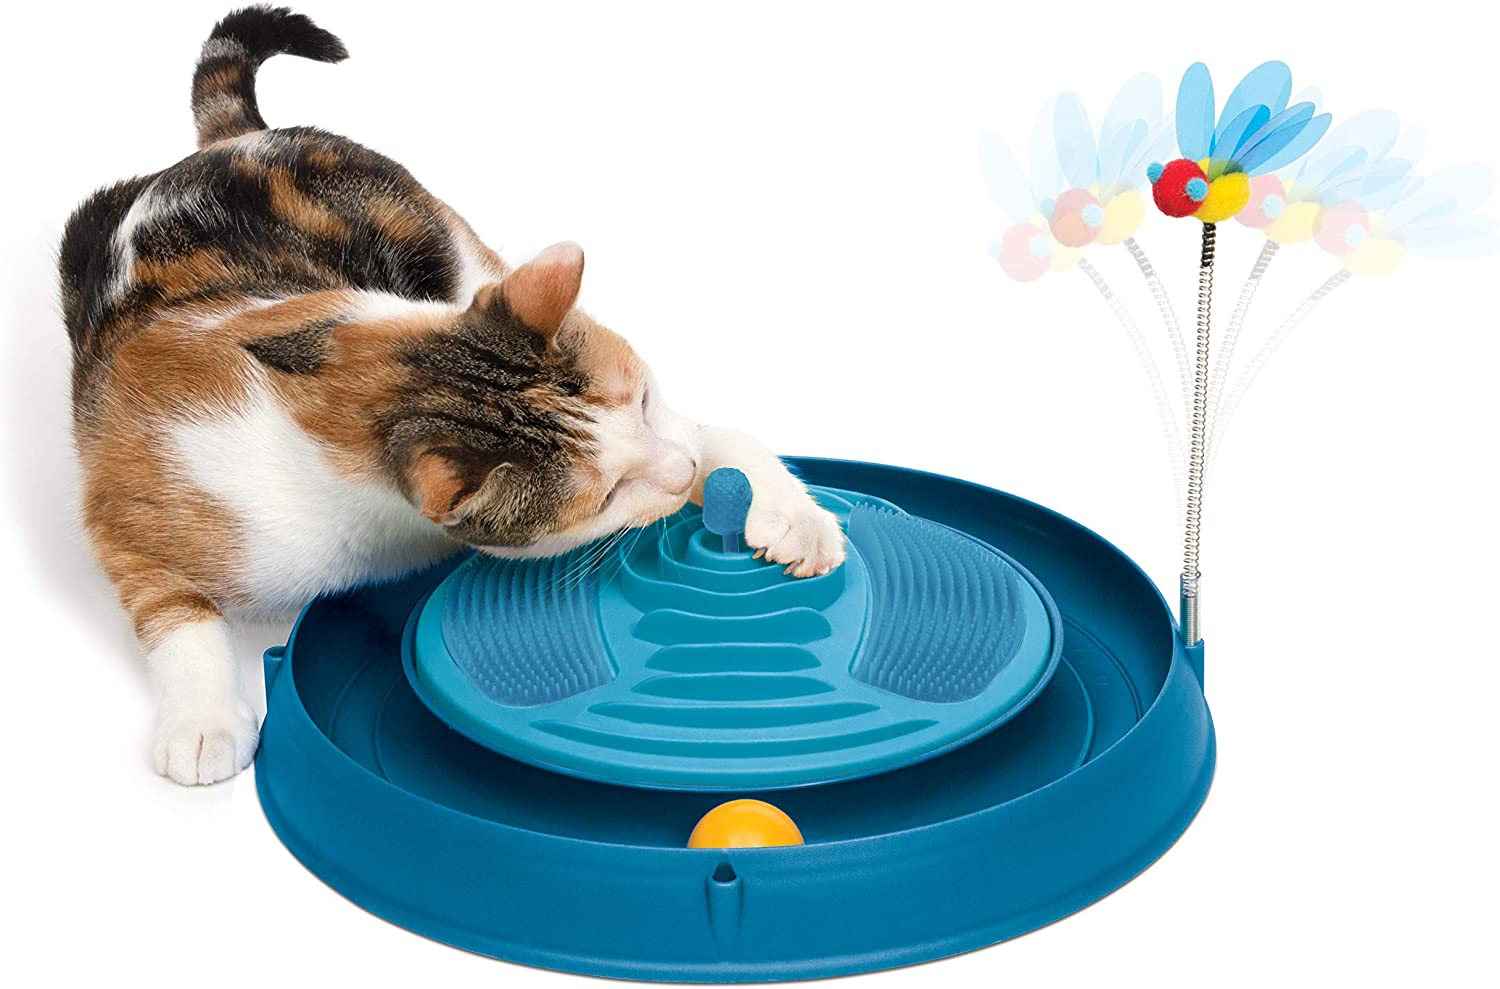 Catit Play Circuit Ball Cat Toy with Scratch Pad, Catnip Toy, Blue, 43001